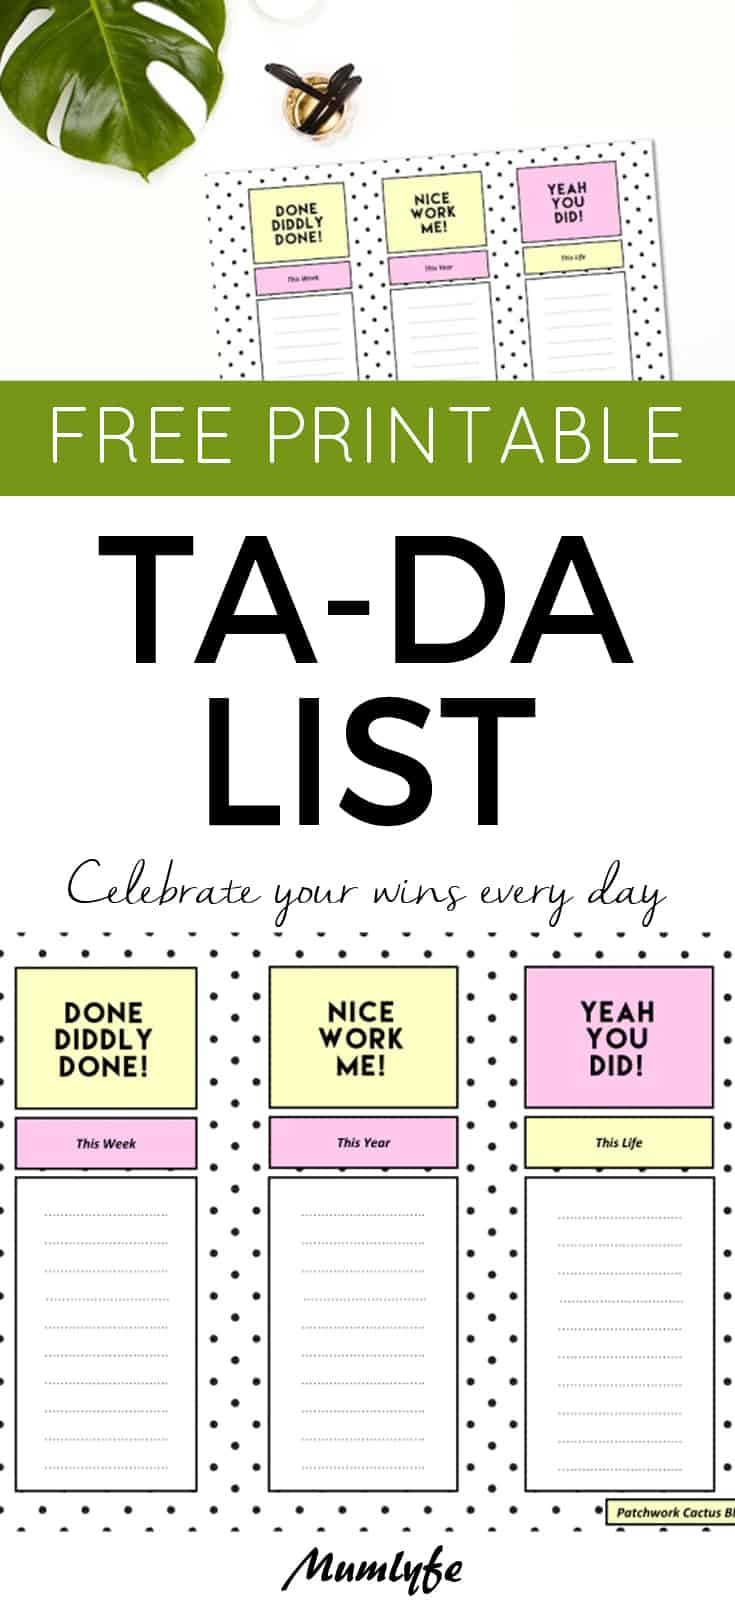 Free Printable Ta Da List - celebrate your wins every day